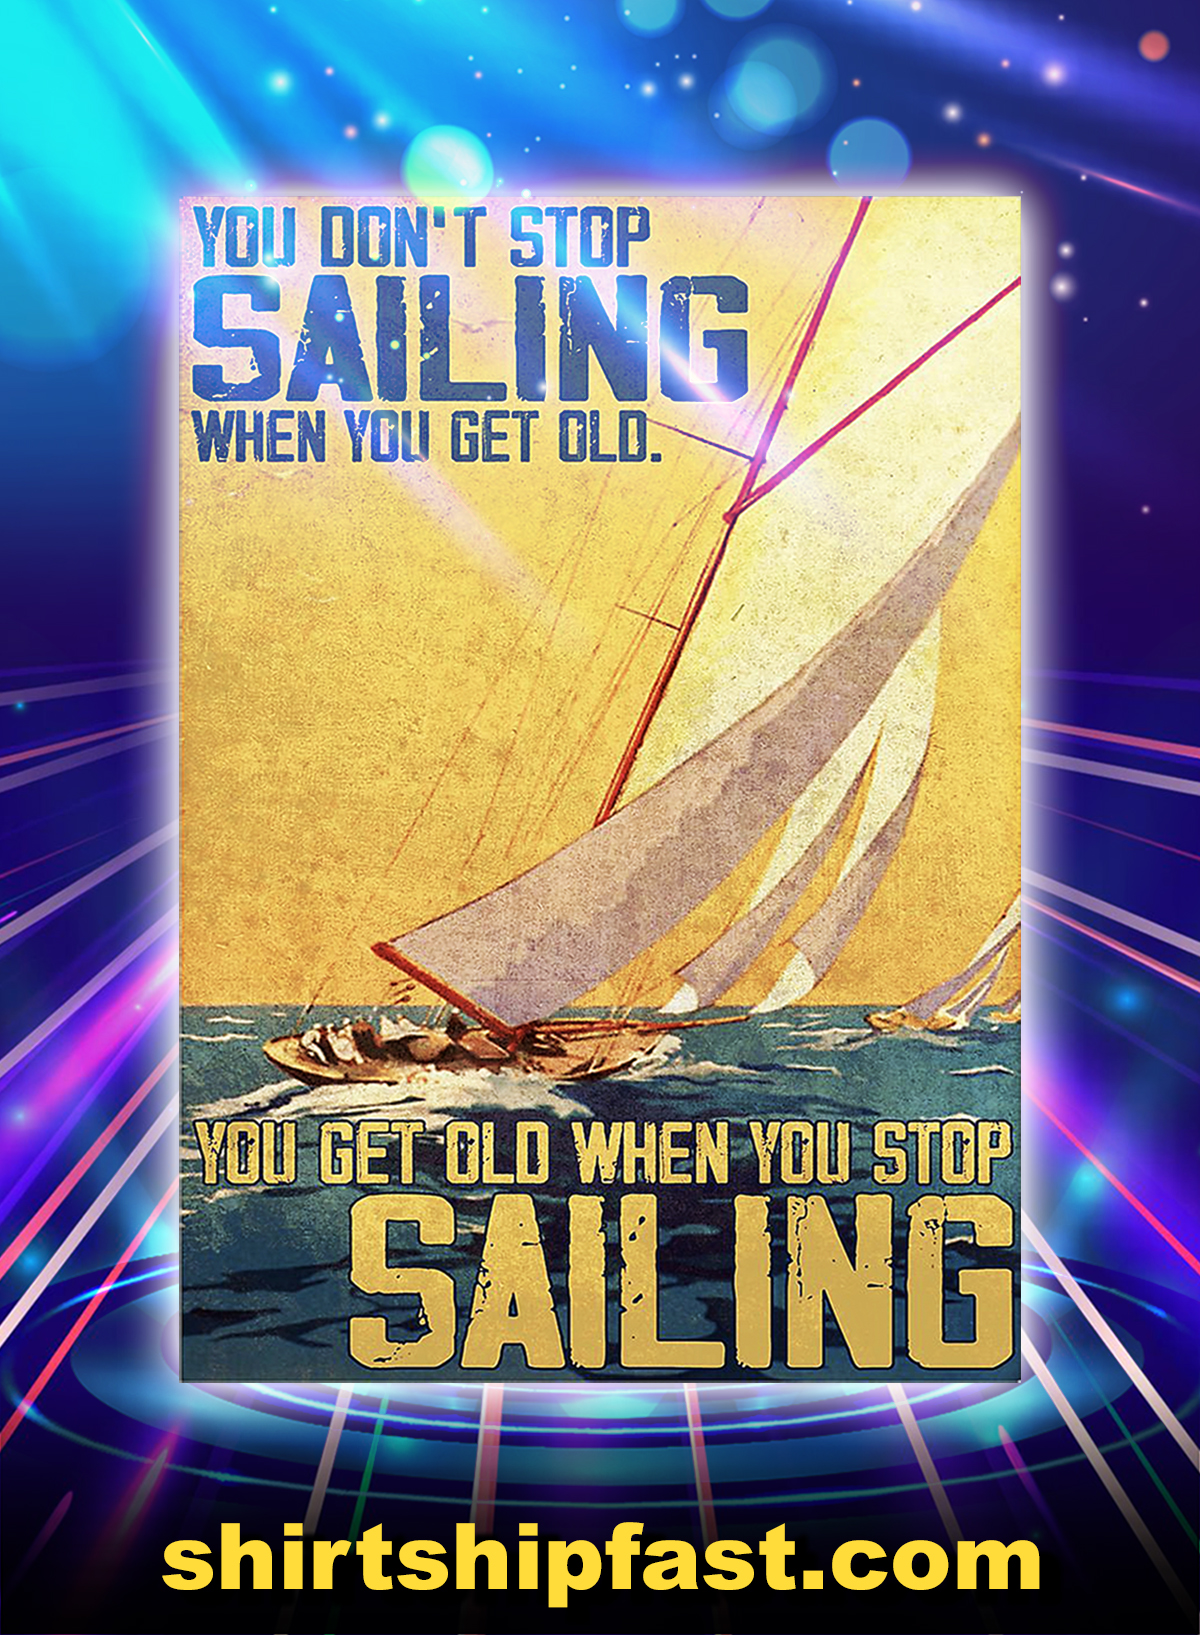 You don't stop sailing when you get old poster - A1